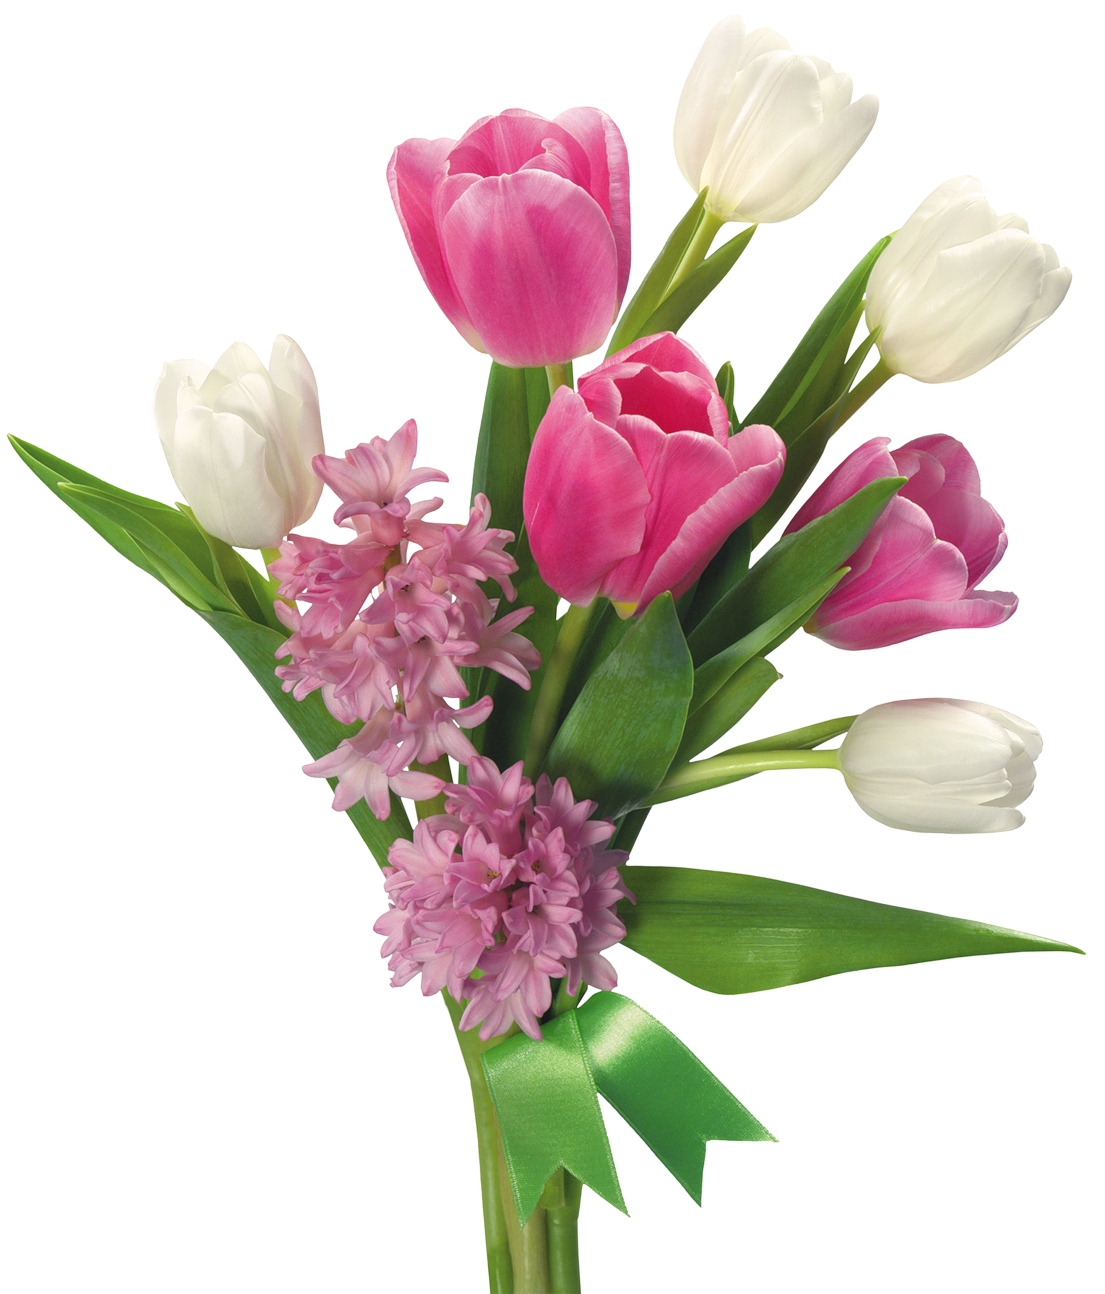 Bouquet Of Roses PNG HD - 142838